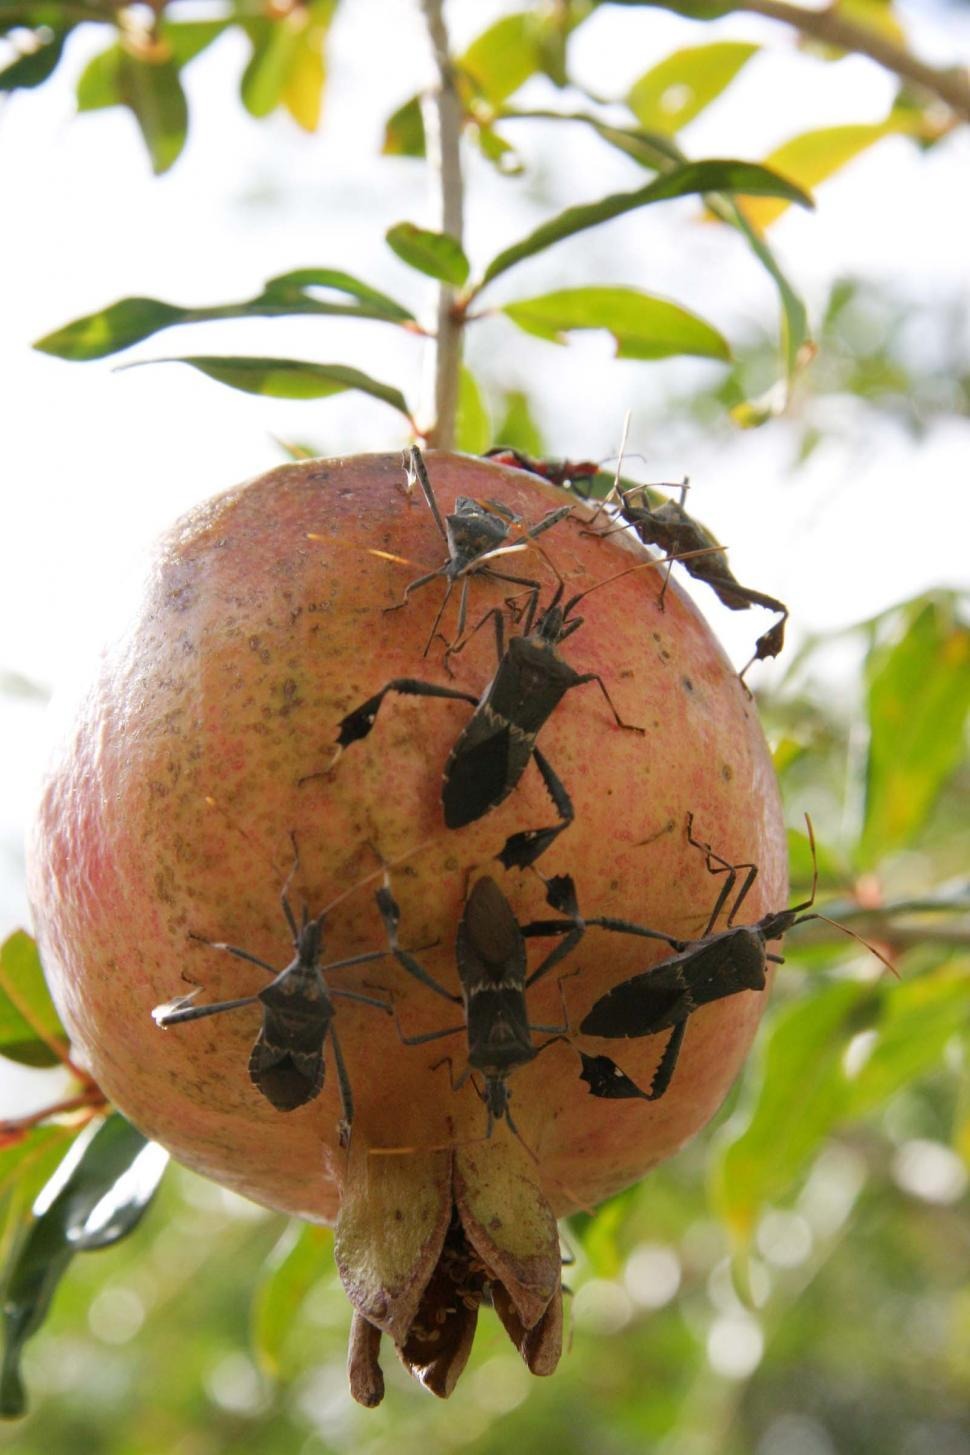 Download Free Stock HD Photo of Many bugs on a pomegranate Online